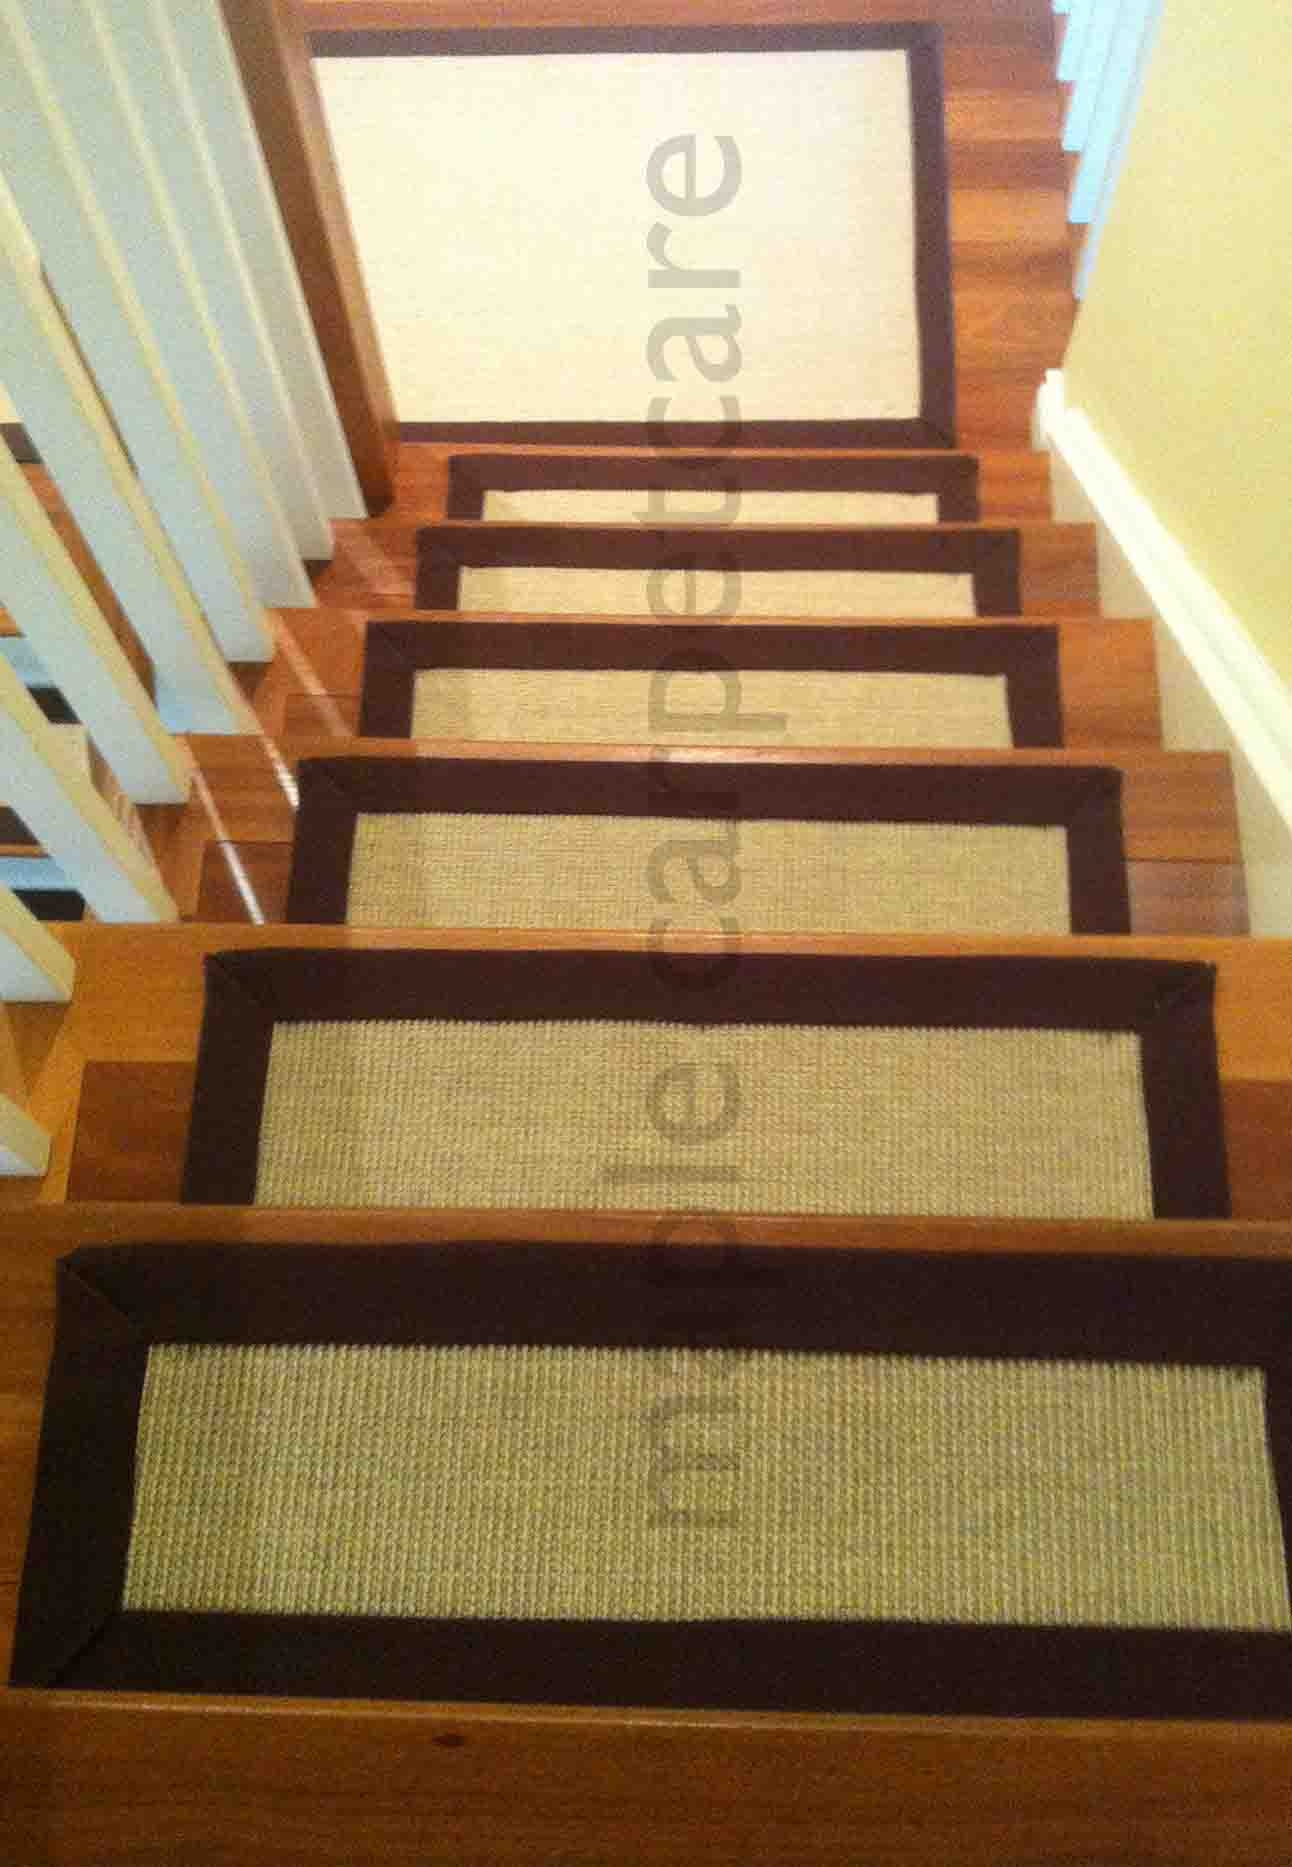 Stair Rugs Rugs For Runners On Stairs Sisal Carpet Laid As Runner For Stair Tread Carpet Protectors (View 11 of 15)